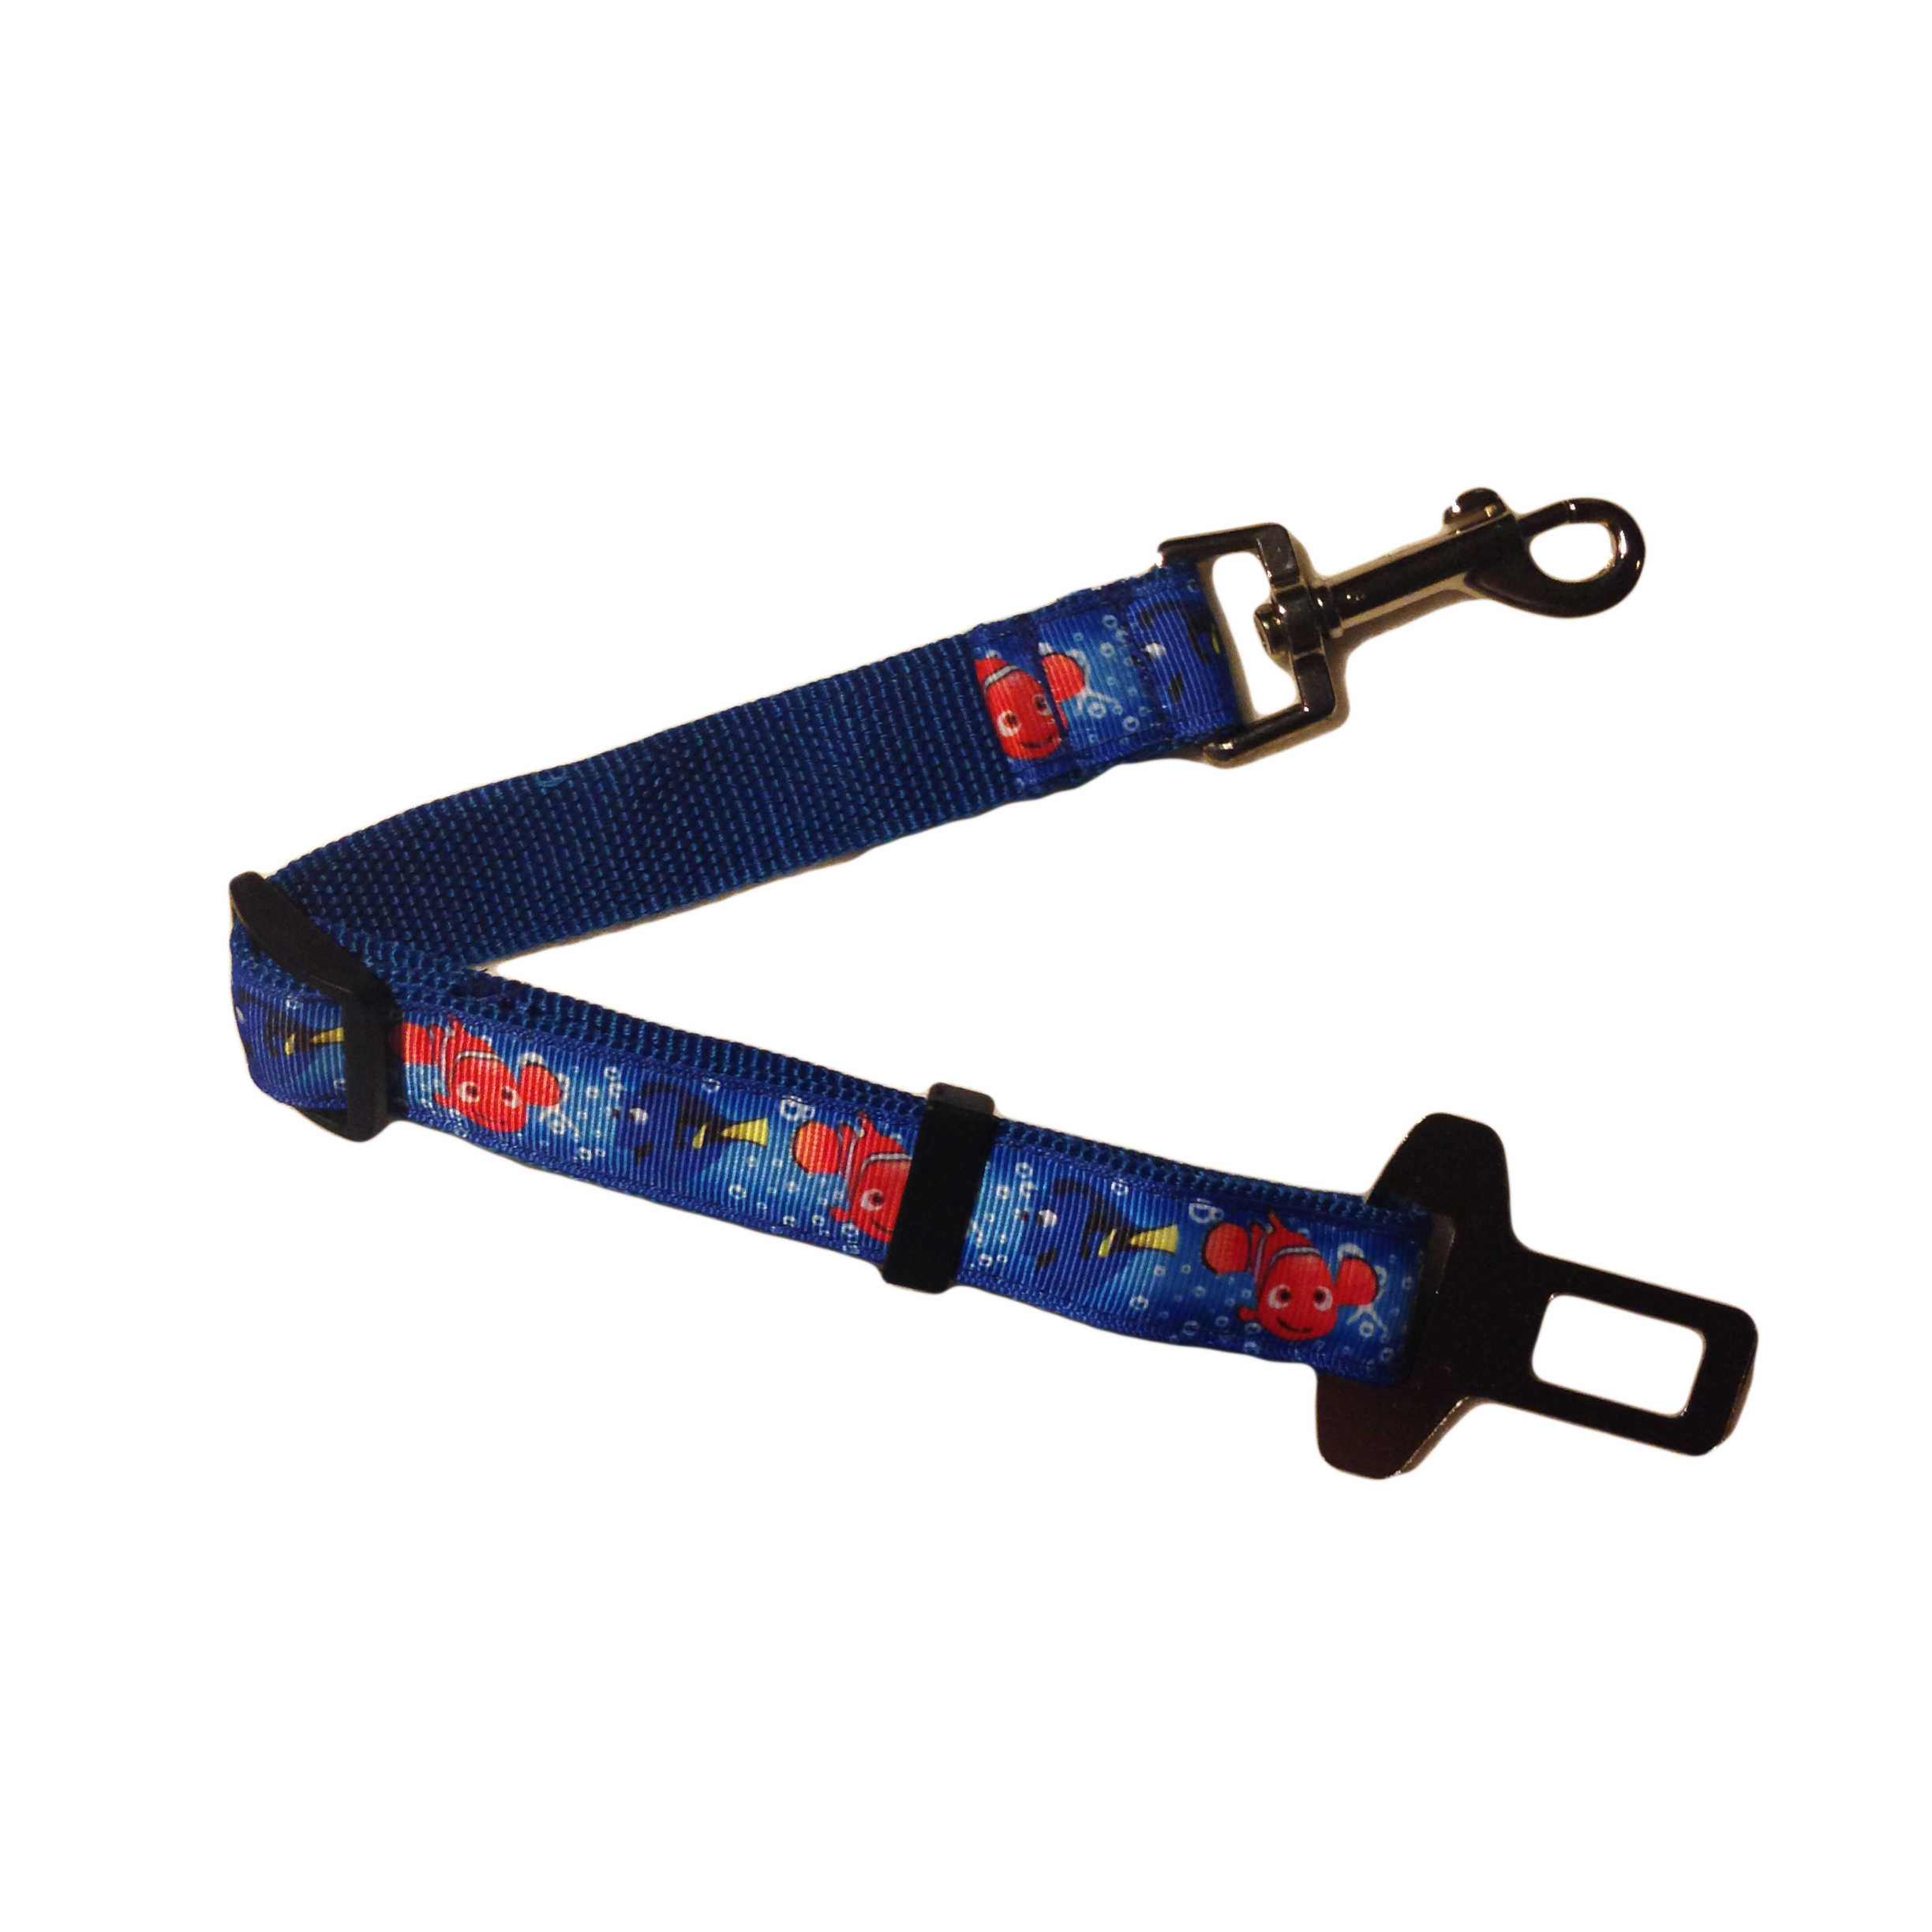 Safety Belt Adjustable Car Safety Belt For Dogs Made From Finding Nemo Fabric